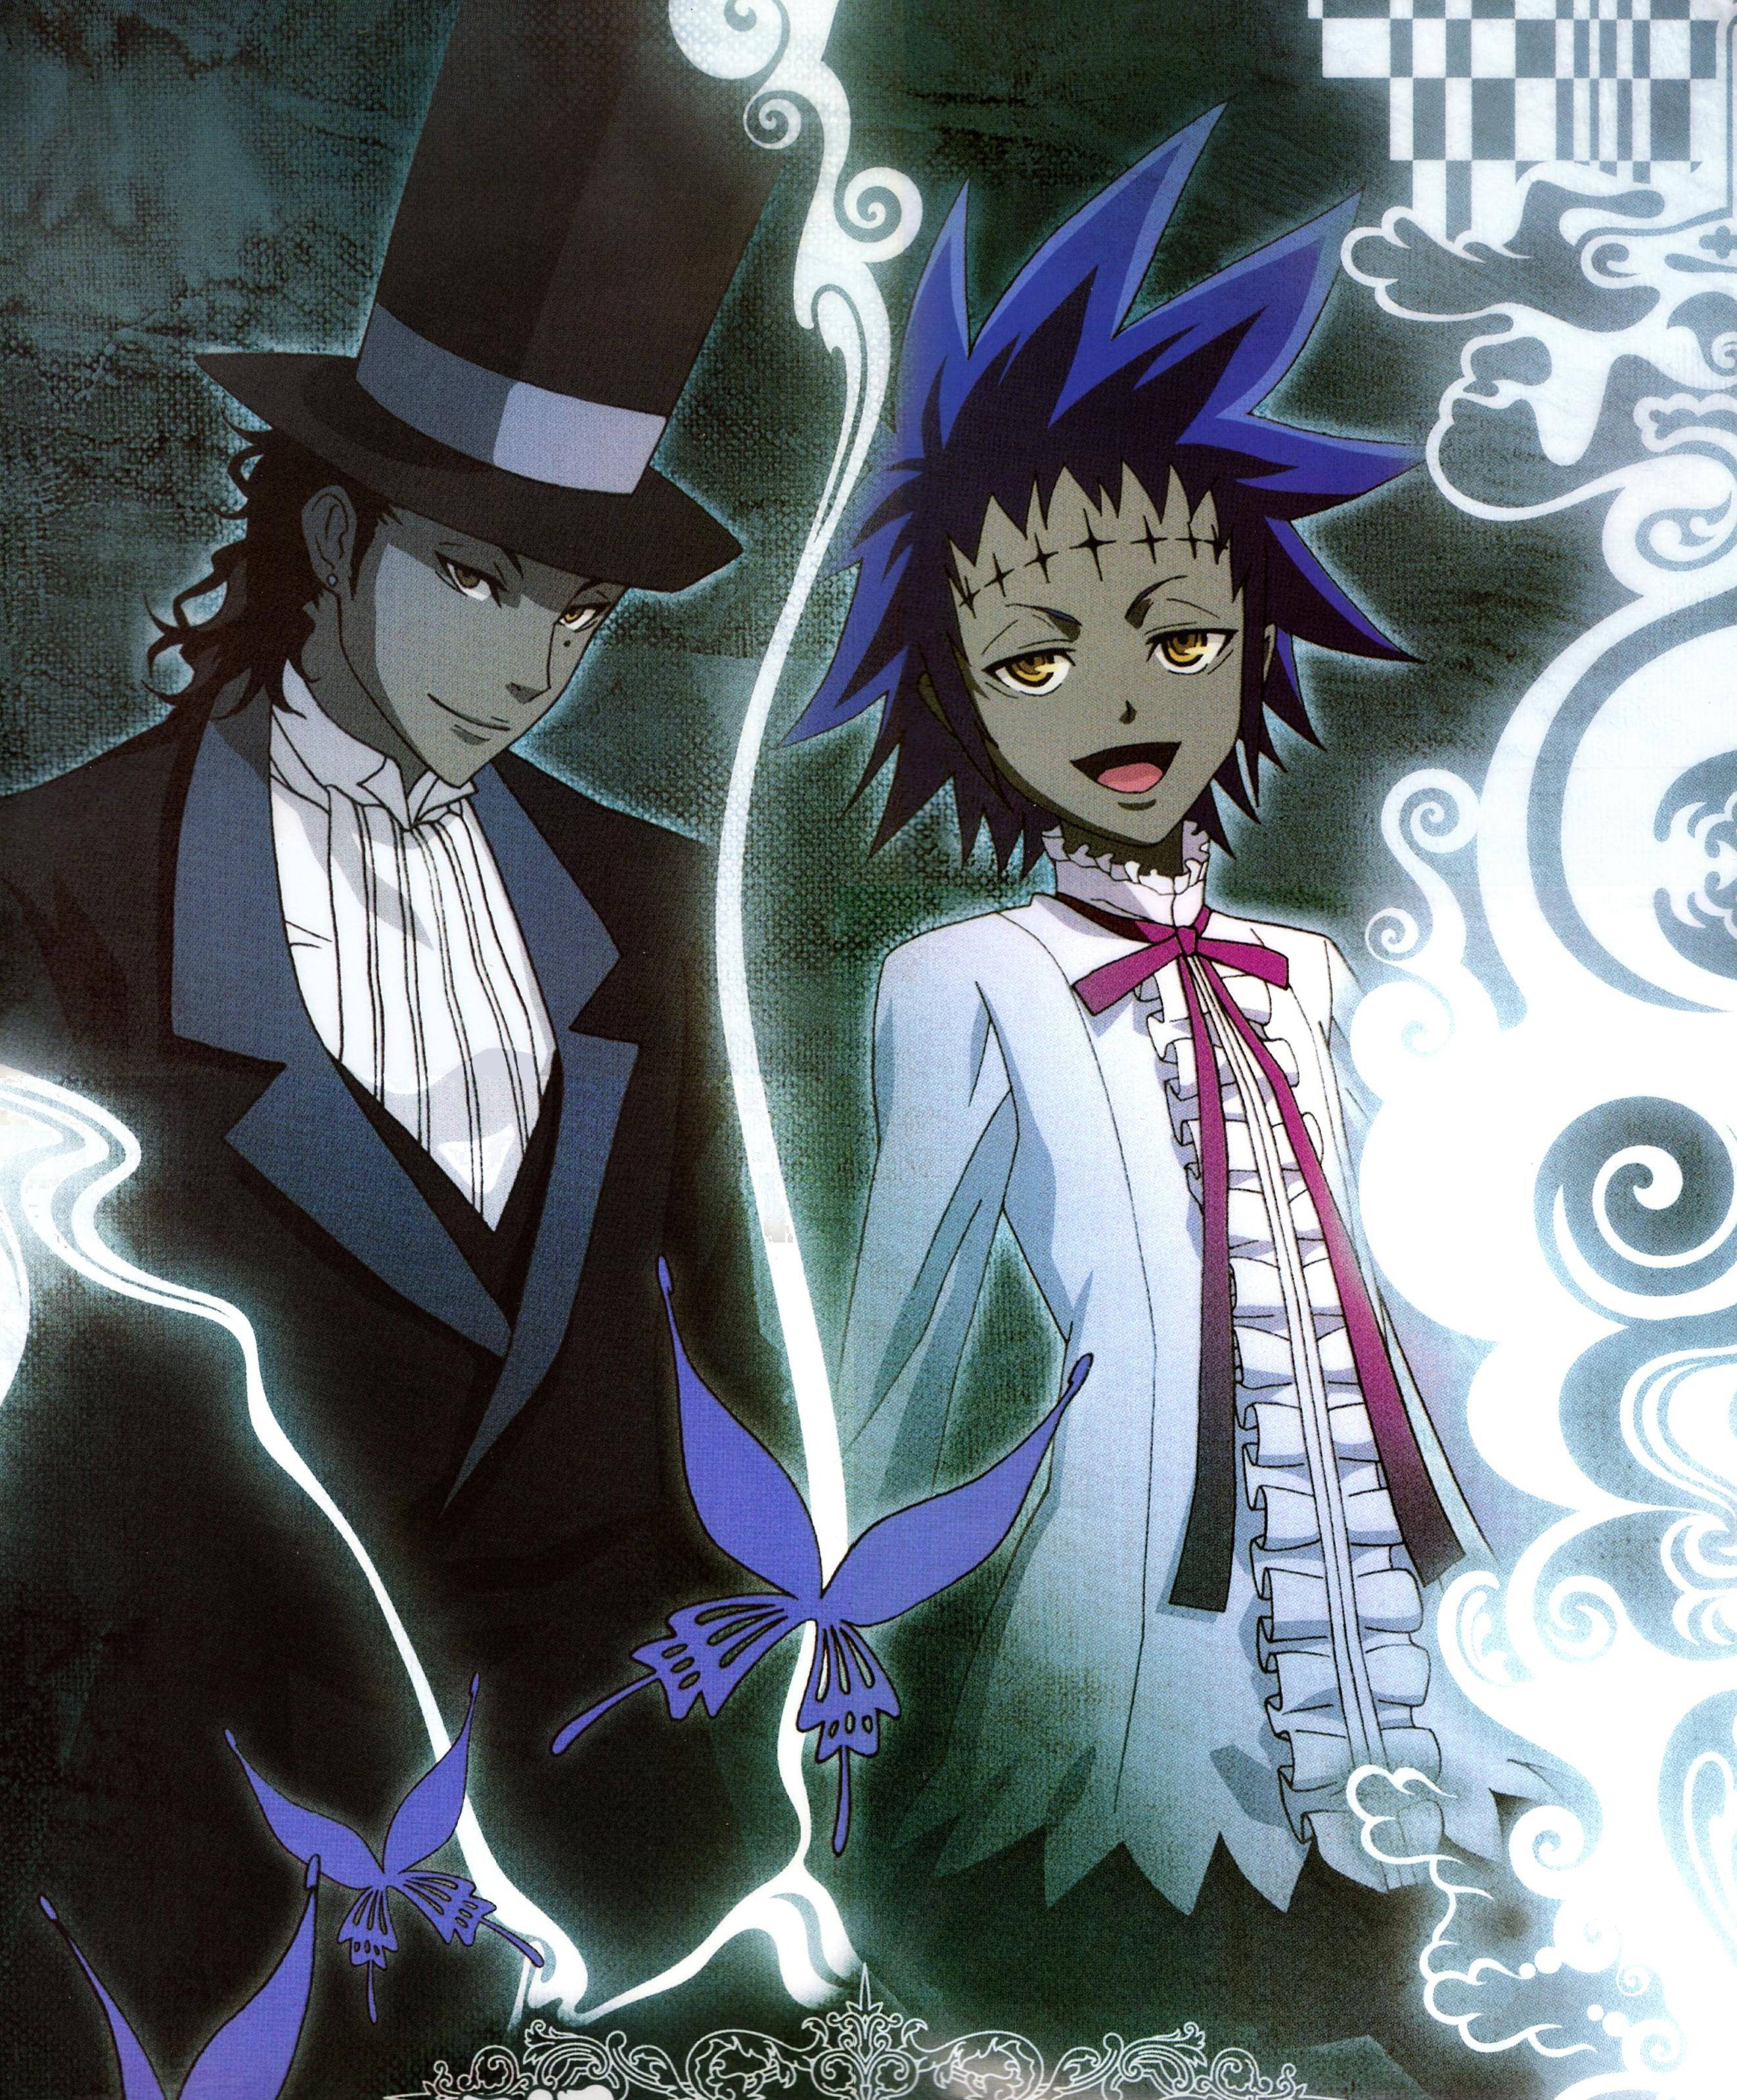 D Gray Man Anime Characters : D gray man image  zerochan anime board